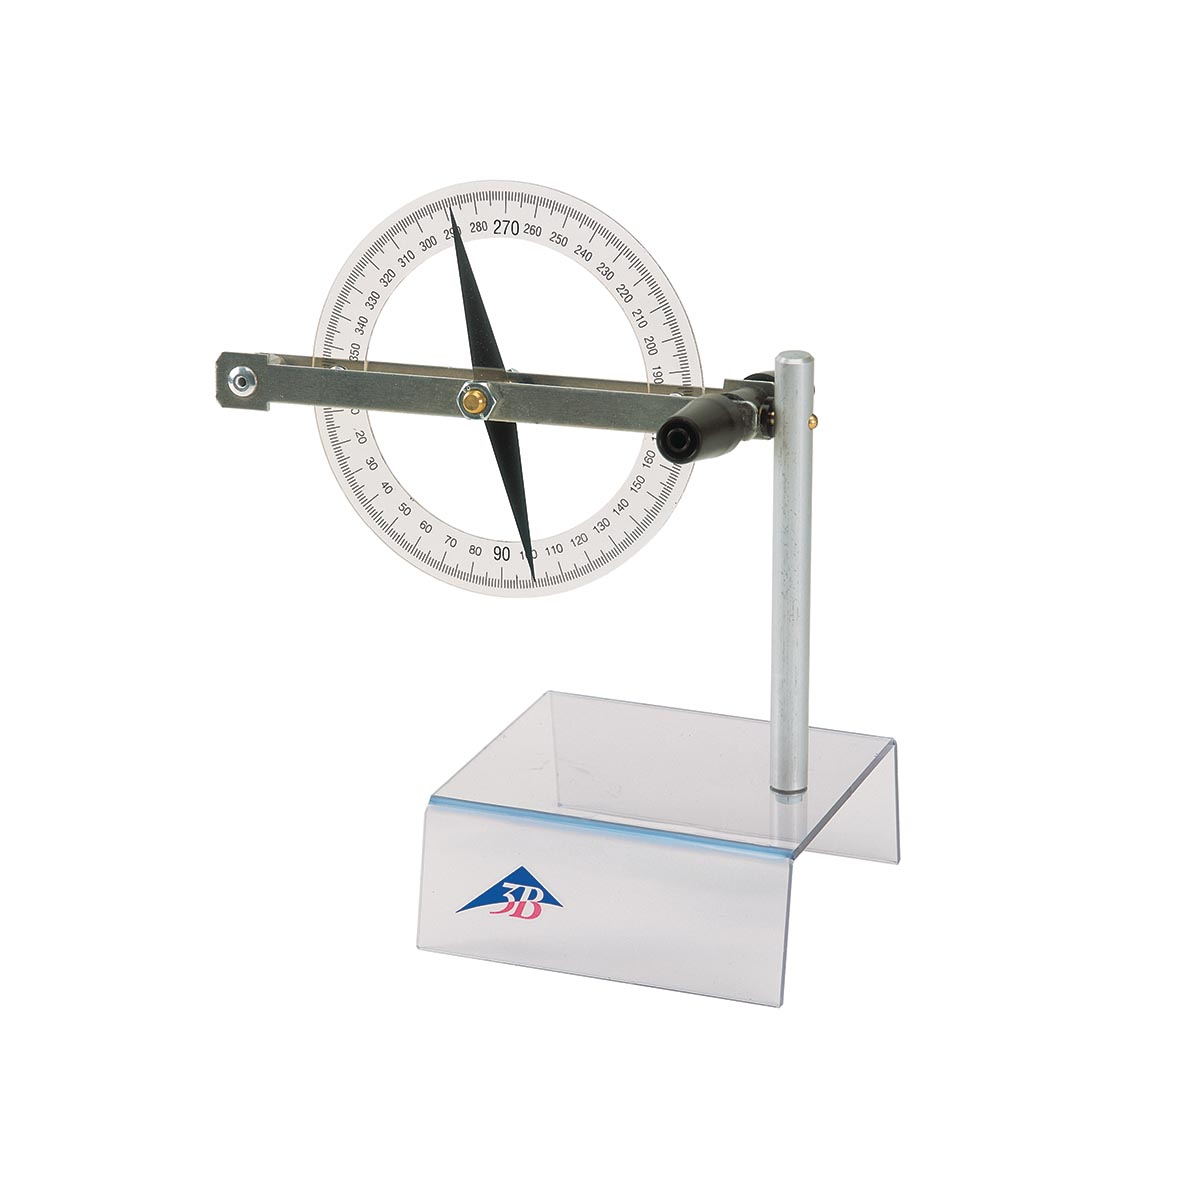 Magnetic Inclination Measuring Instrument For : Inclination instrument u magnetic